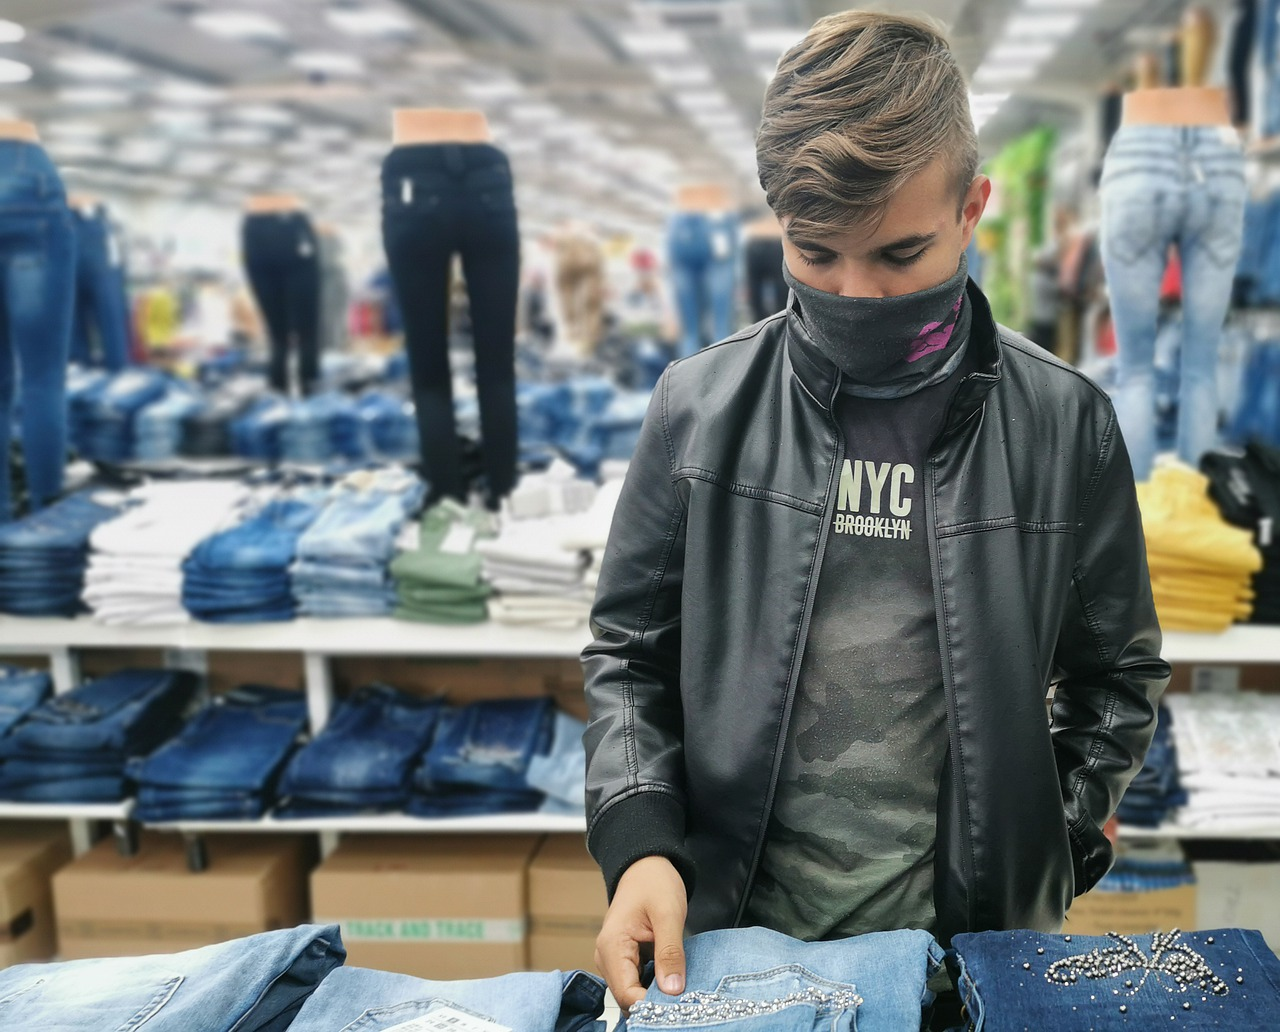 How Has the Pandemic Affected Clothing Distribution Channels and Sales